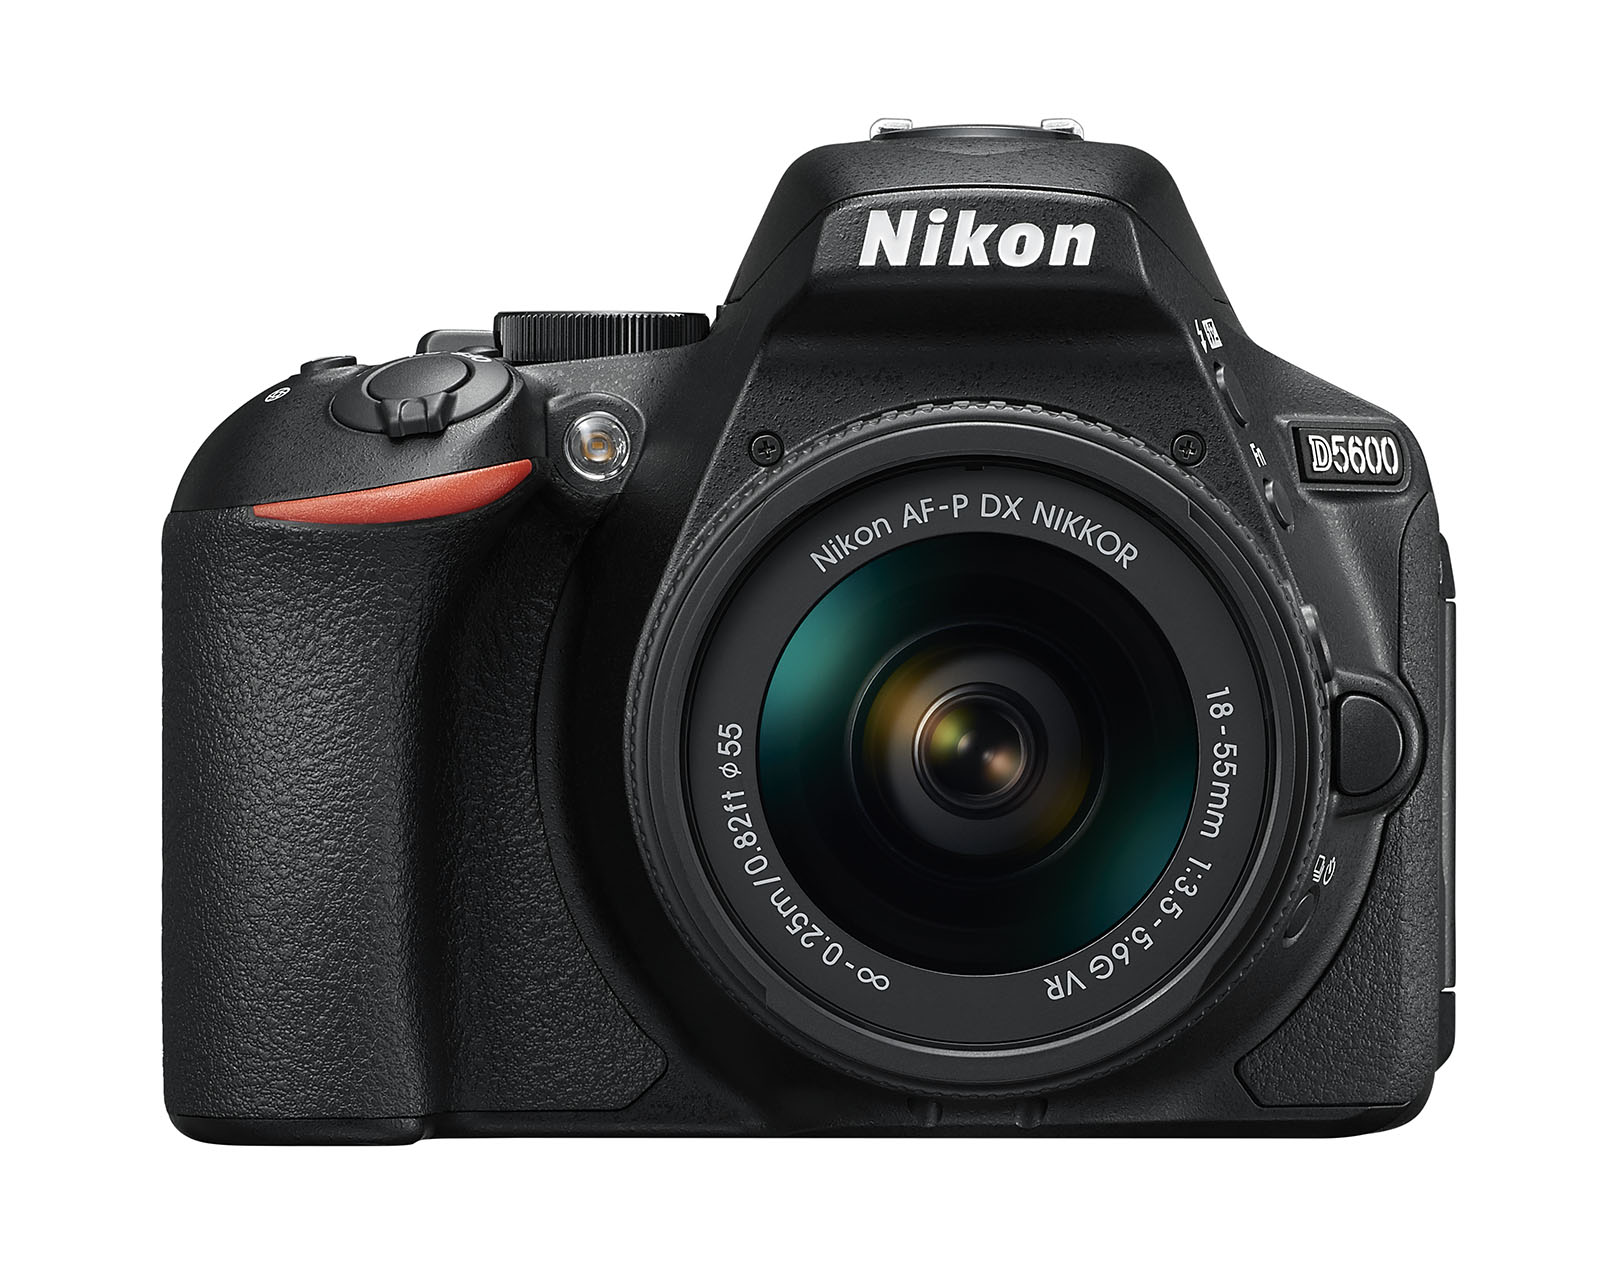 Nikon D5600 DSLR Announced With Bluetooth